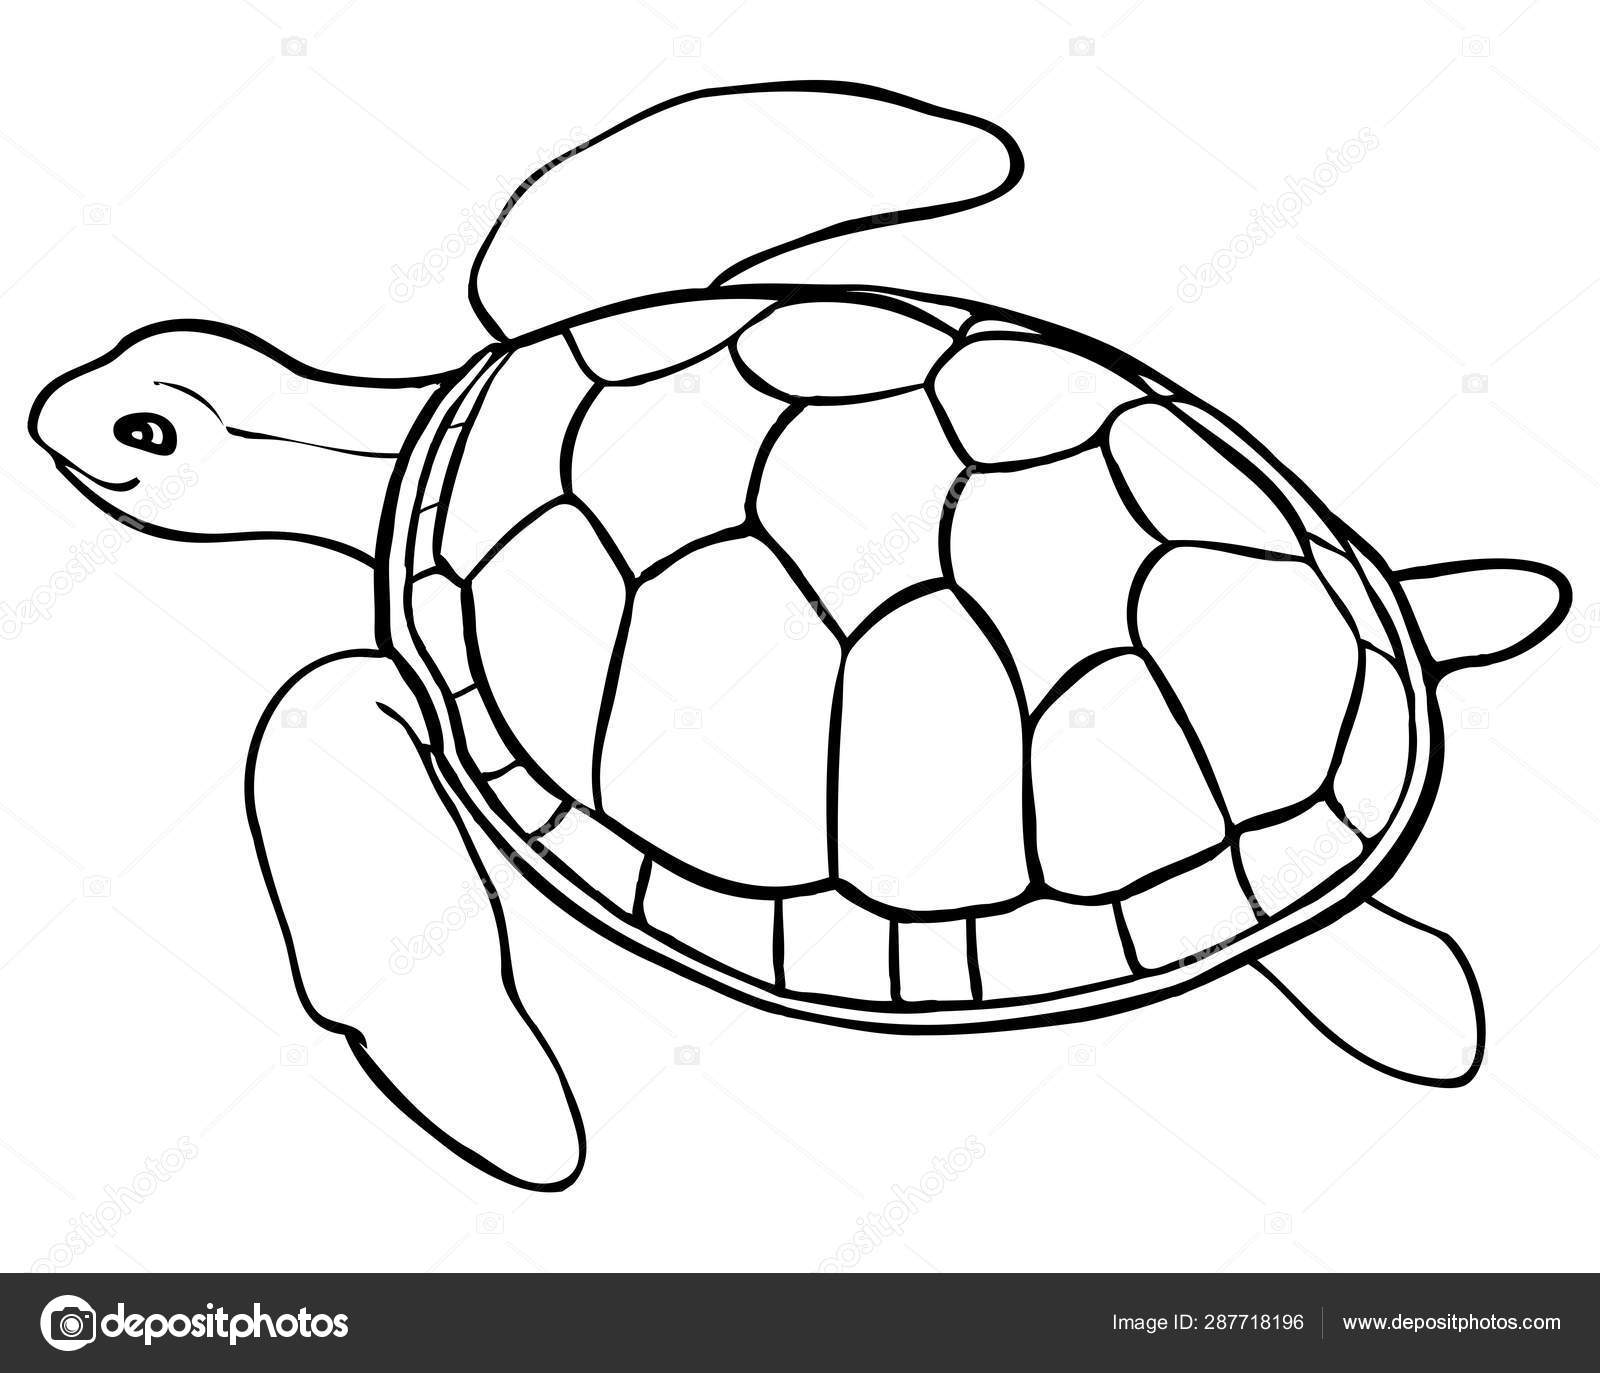 - Contour Turtle - Coloring Page For Kids, Line Art — Stock Vector